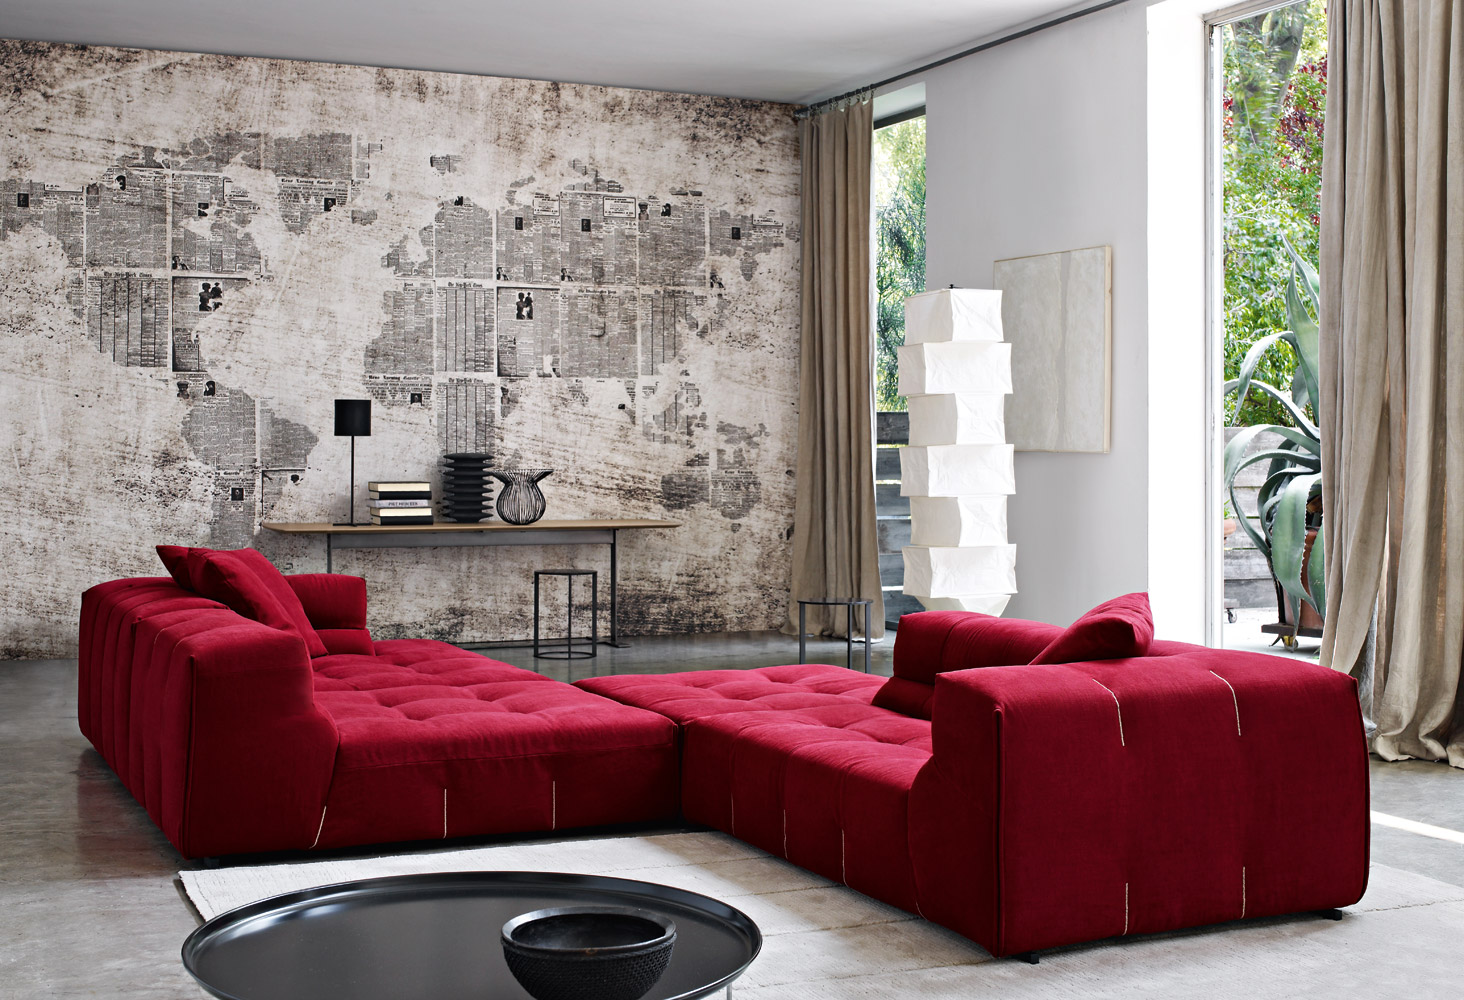 Tufty too sofa by b b italia designer furniture fitted for B b couch